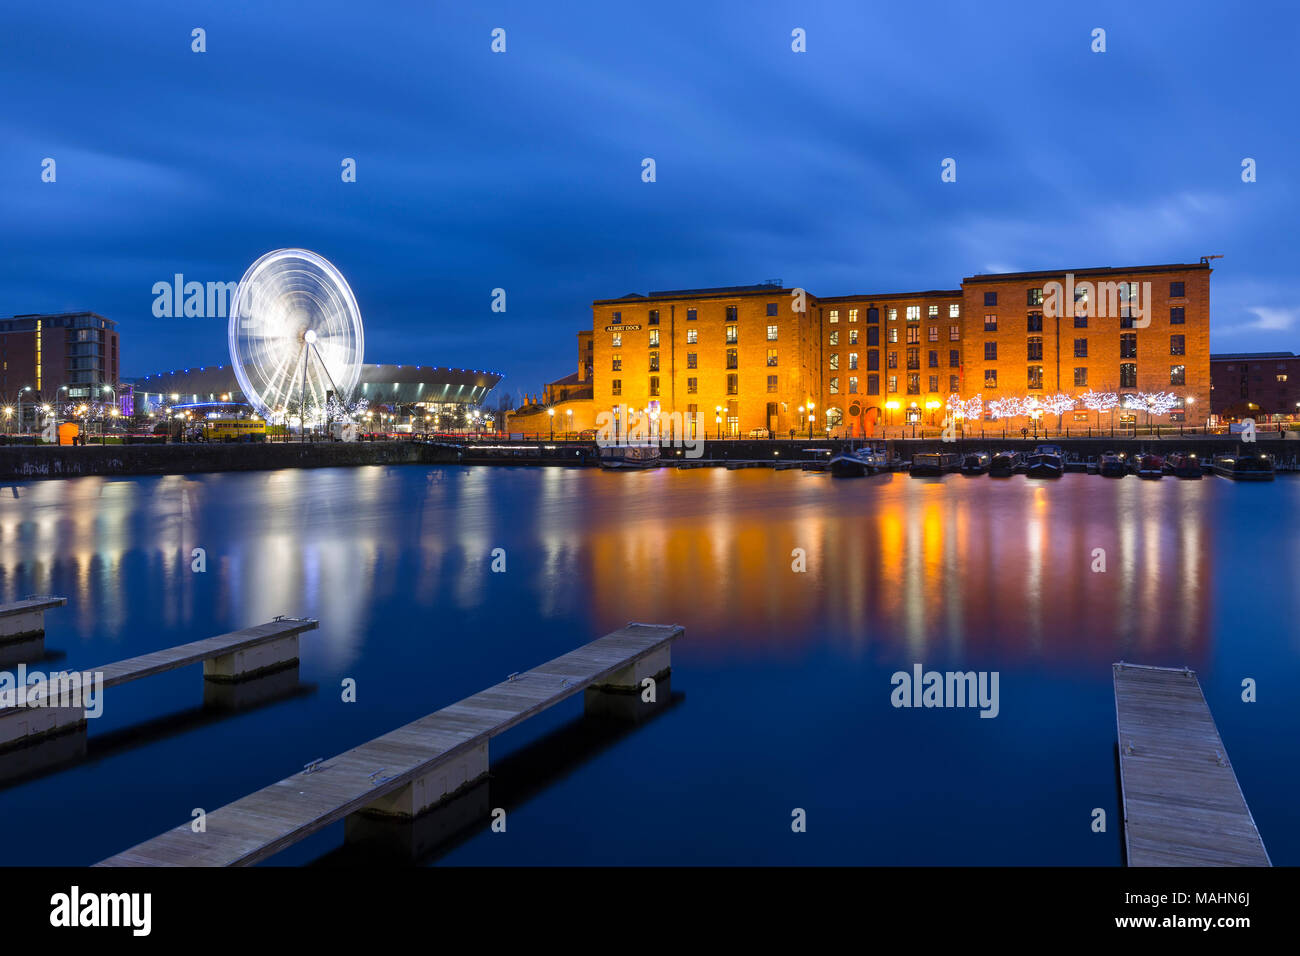 Red brick buildings of the Albert Dock, The Wheel of Liverpool and Liverpool Arena viewed from Salthouse Dock at Night - Stock Image